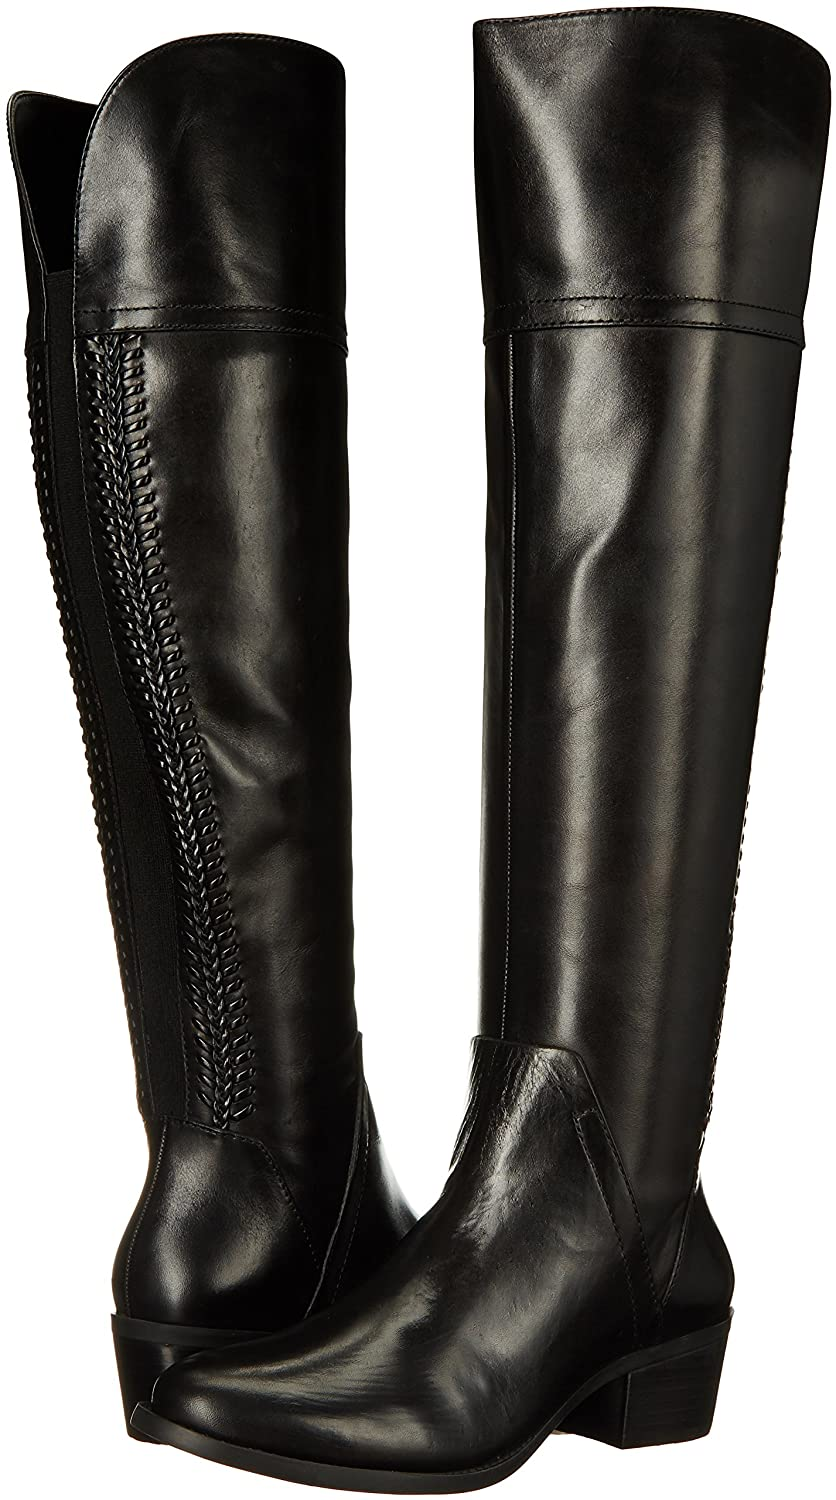 Women's Vince Camuto Bendra Black Fold Over Leather Riding Boot